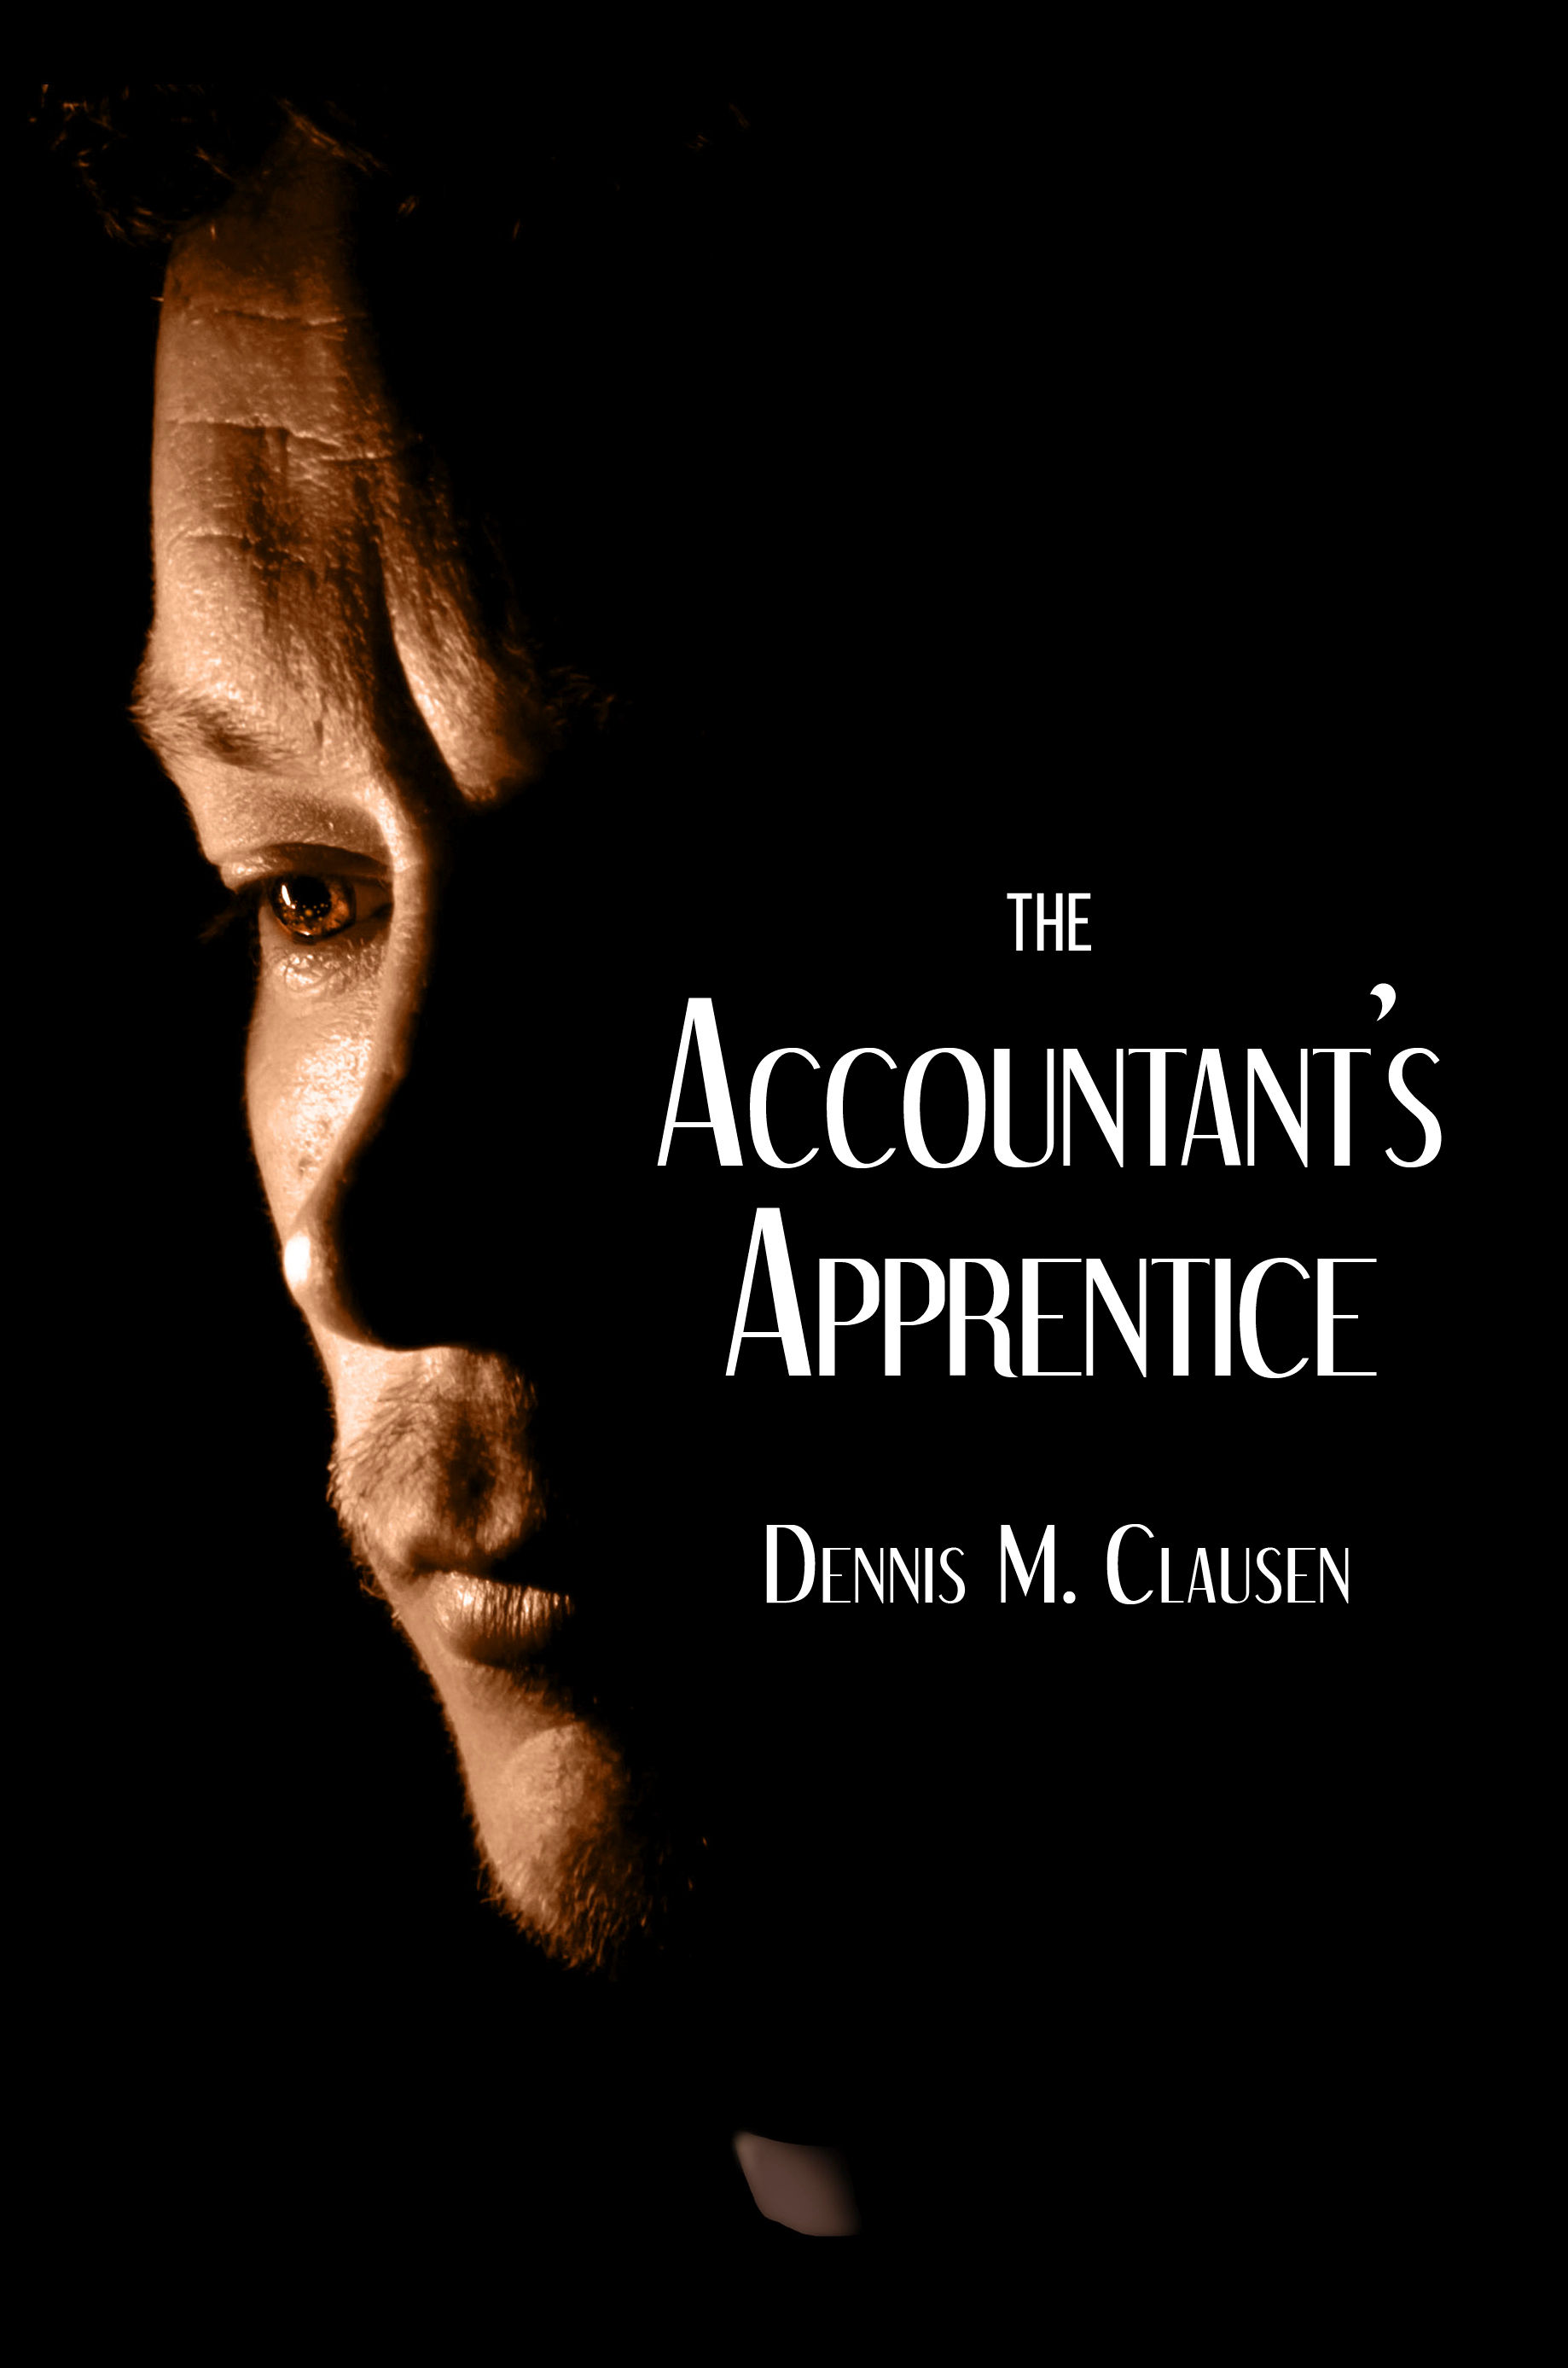 The Accountant's Apprentice